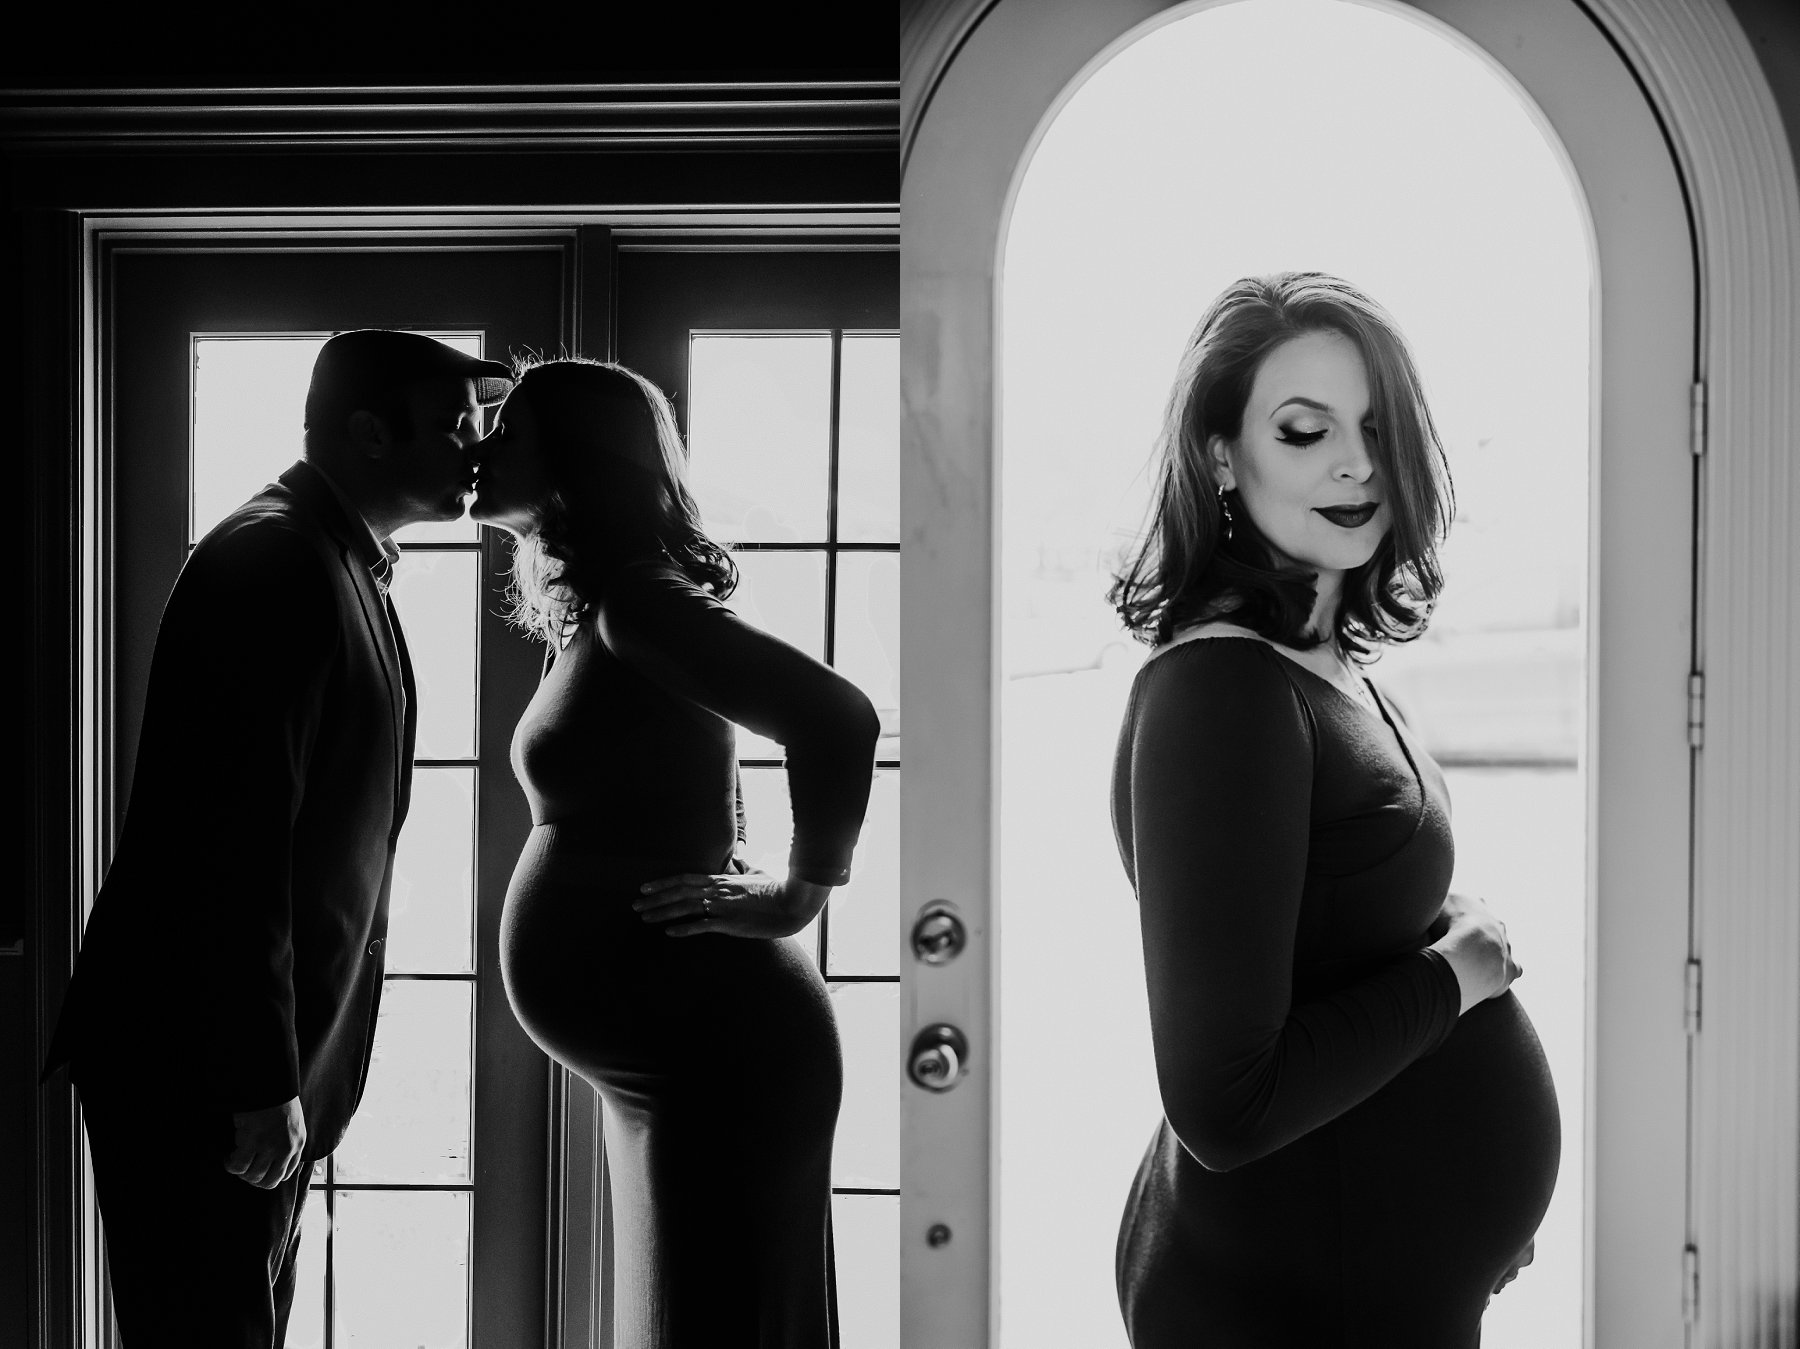 Black and White Winter Maternity Photography in Kansas City by Merry Ohler, Wedding Photographer Kansas City - 8